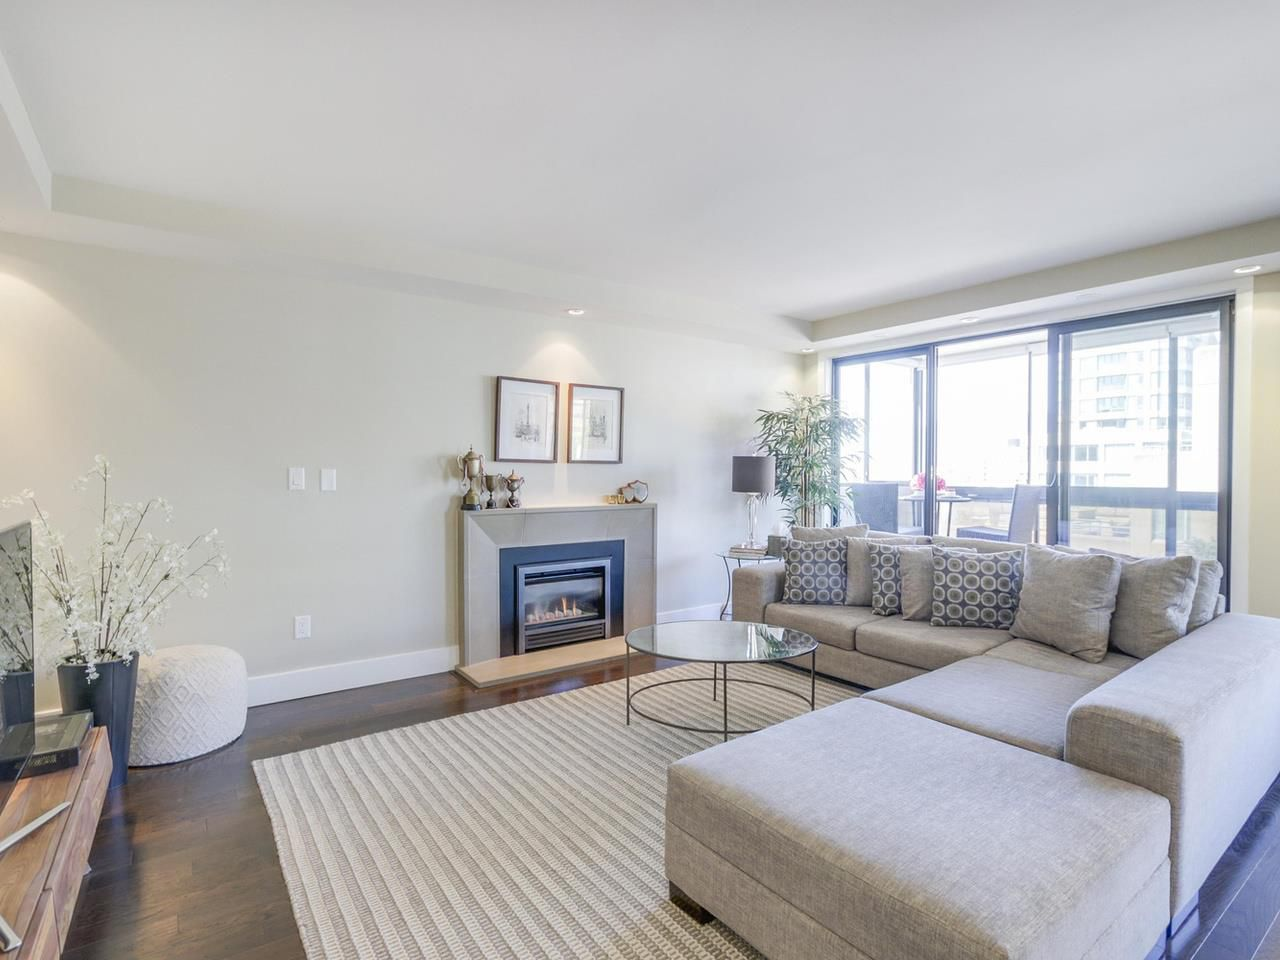 """Main Photo: 501 1337 W 10TH Avenue in Vancouver: Fairview VW Condo for sale in """"THE KIMBERLEY"""" (Vancouver West)  : MLS®# R2101906"""